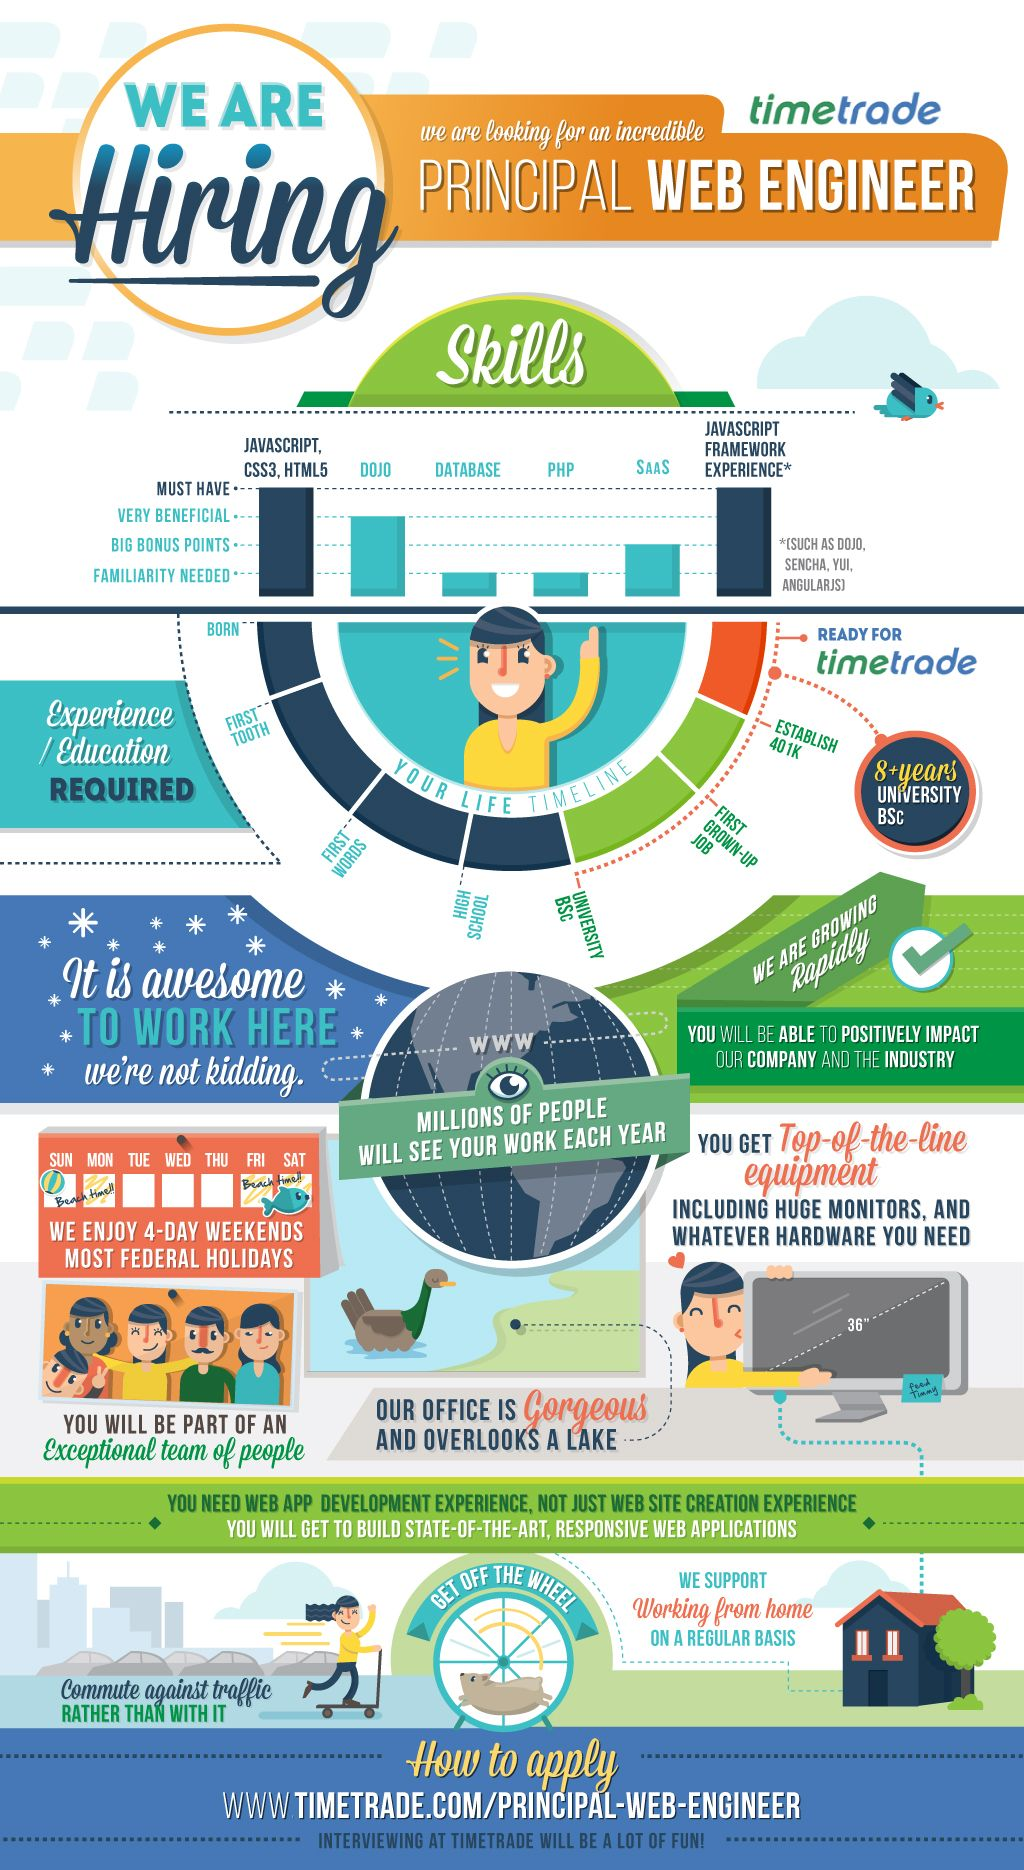 Infographic Design By Flupito Infographic Hiring Jobs Recruiters Design Infographic Web Design Jobs Job Posting